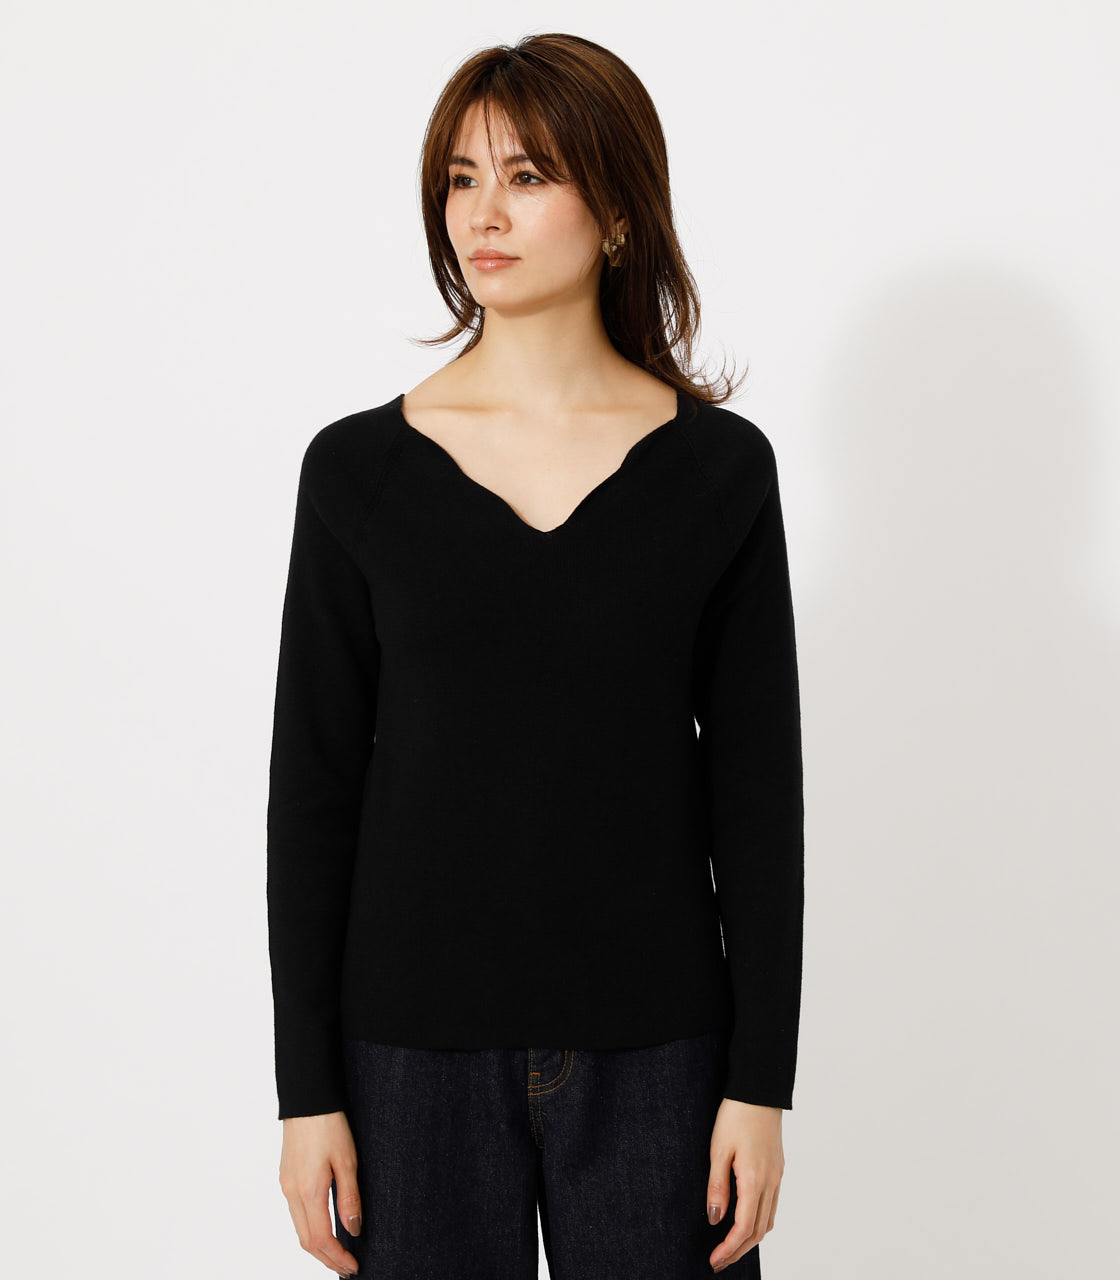 SCALLOP KNIT TOPS/スカルプニットトップス 詳細画像 BLK 4